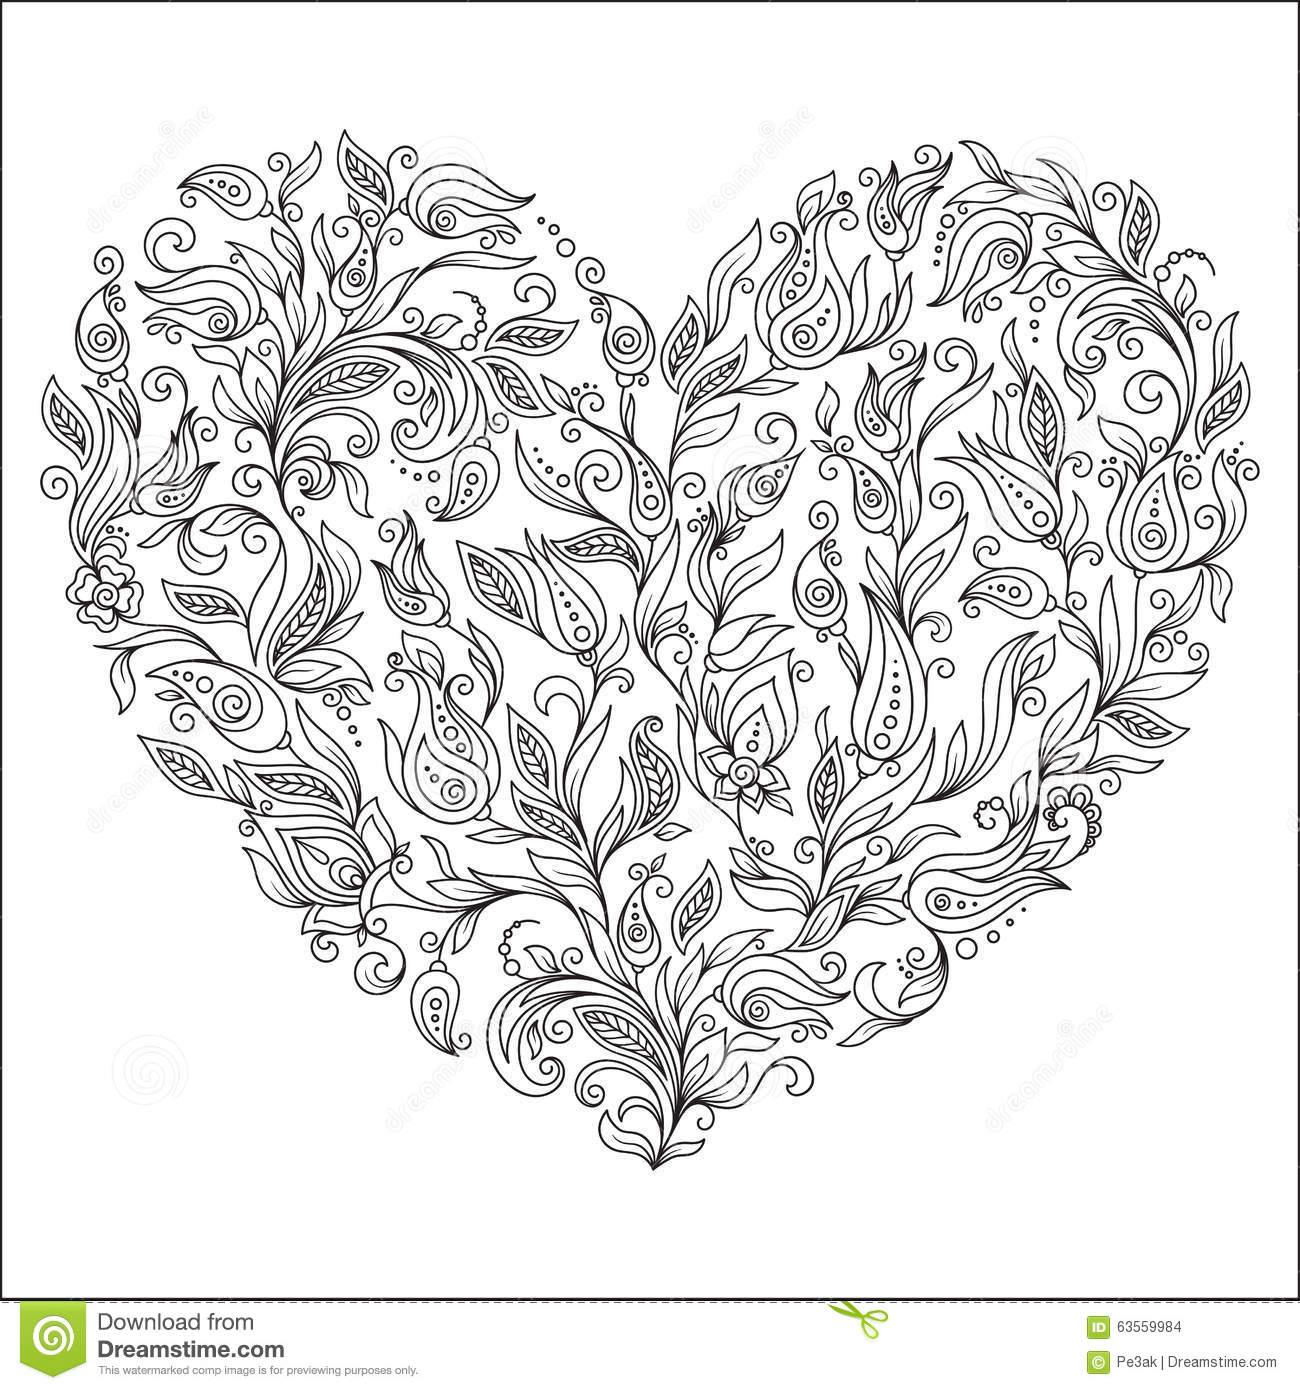 coloring page flower heart st valentine u0027s day stock illustration